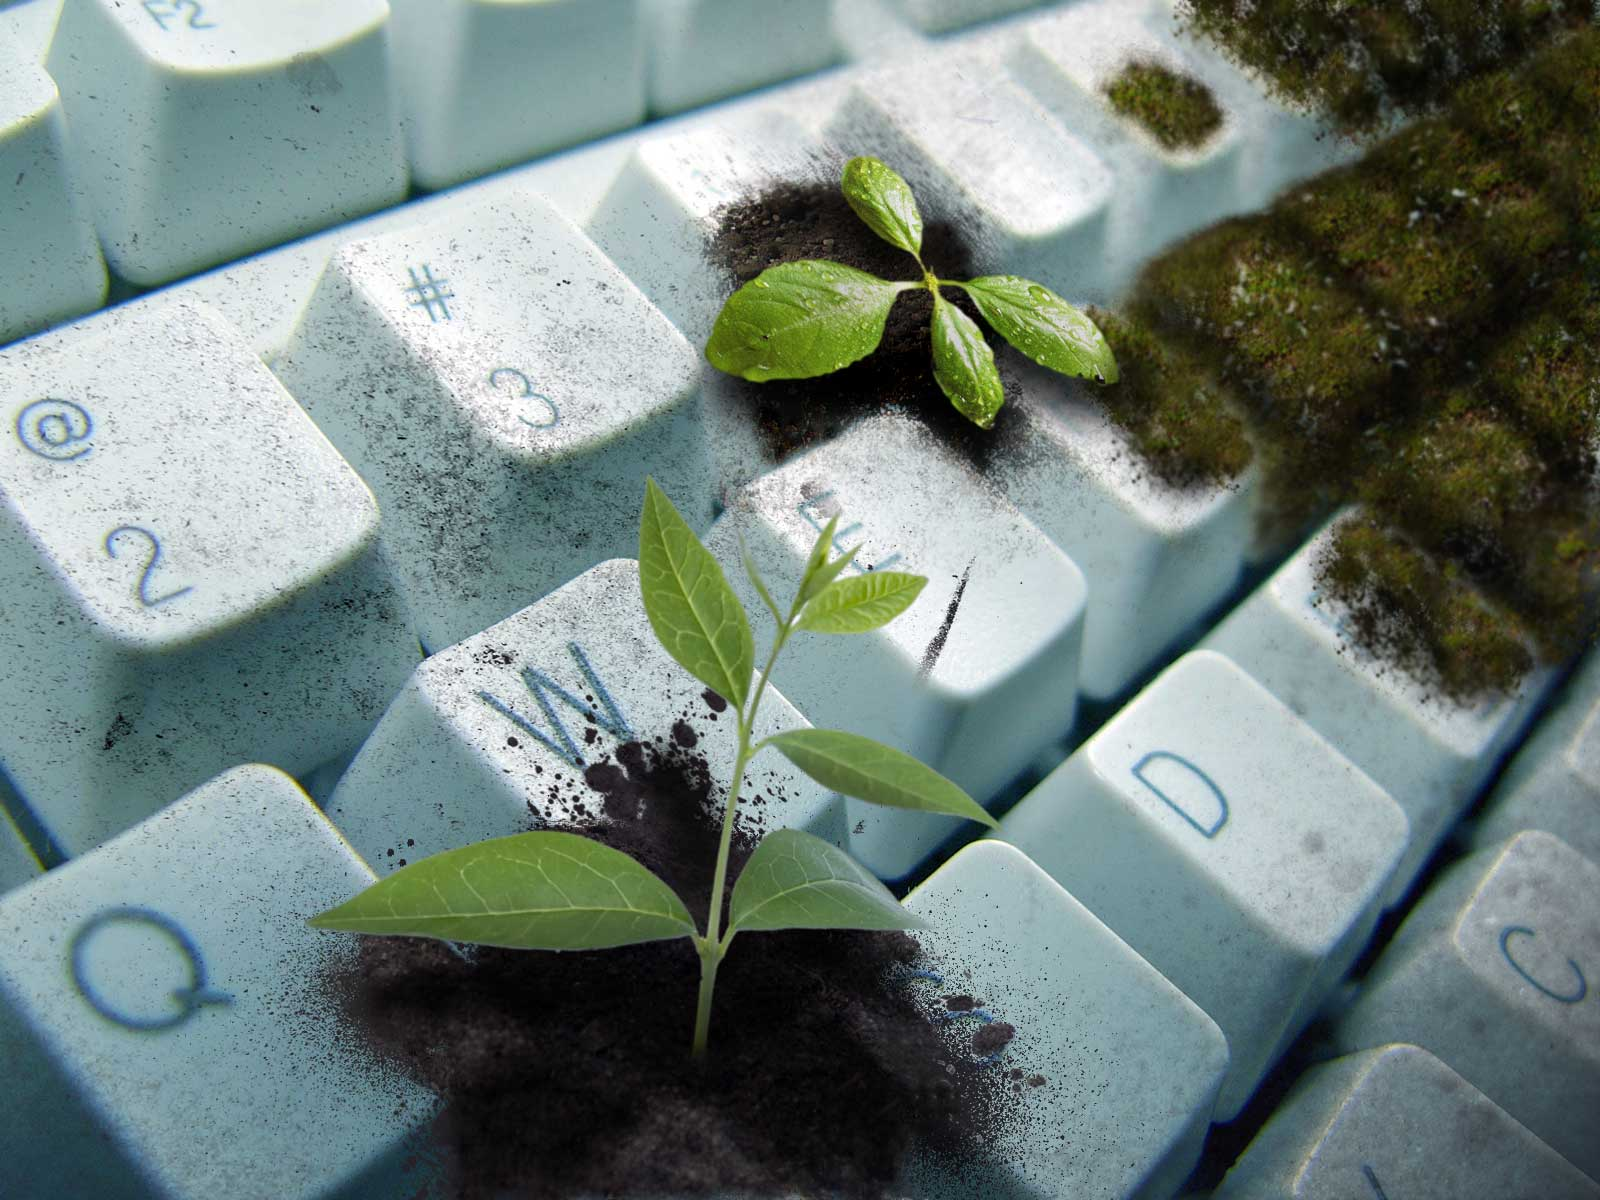 Technology literally devouring nature